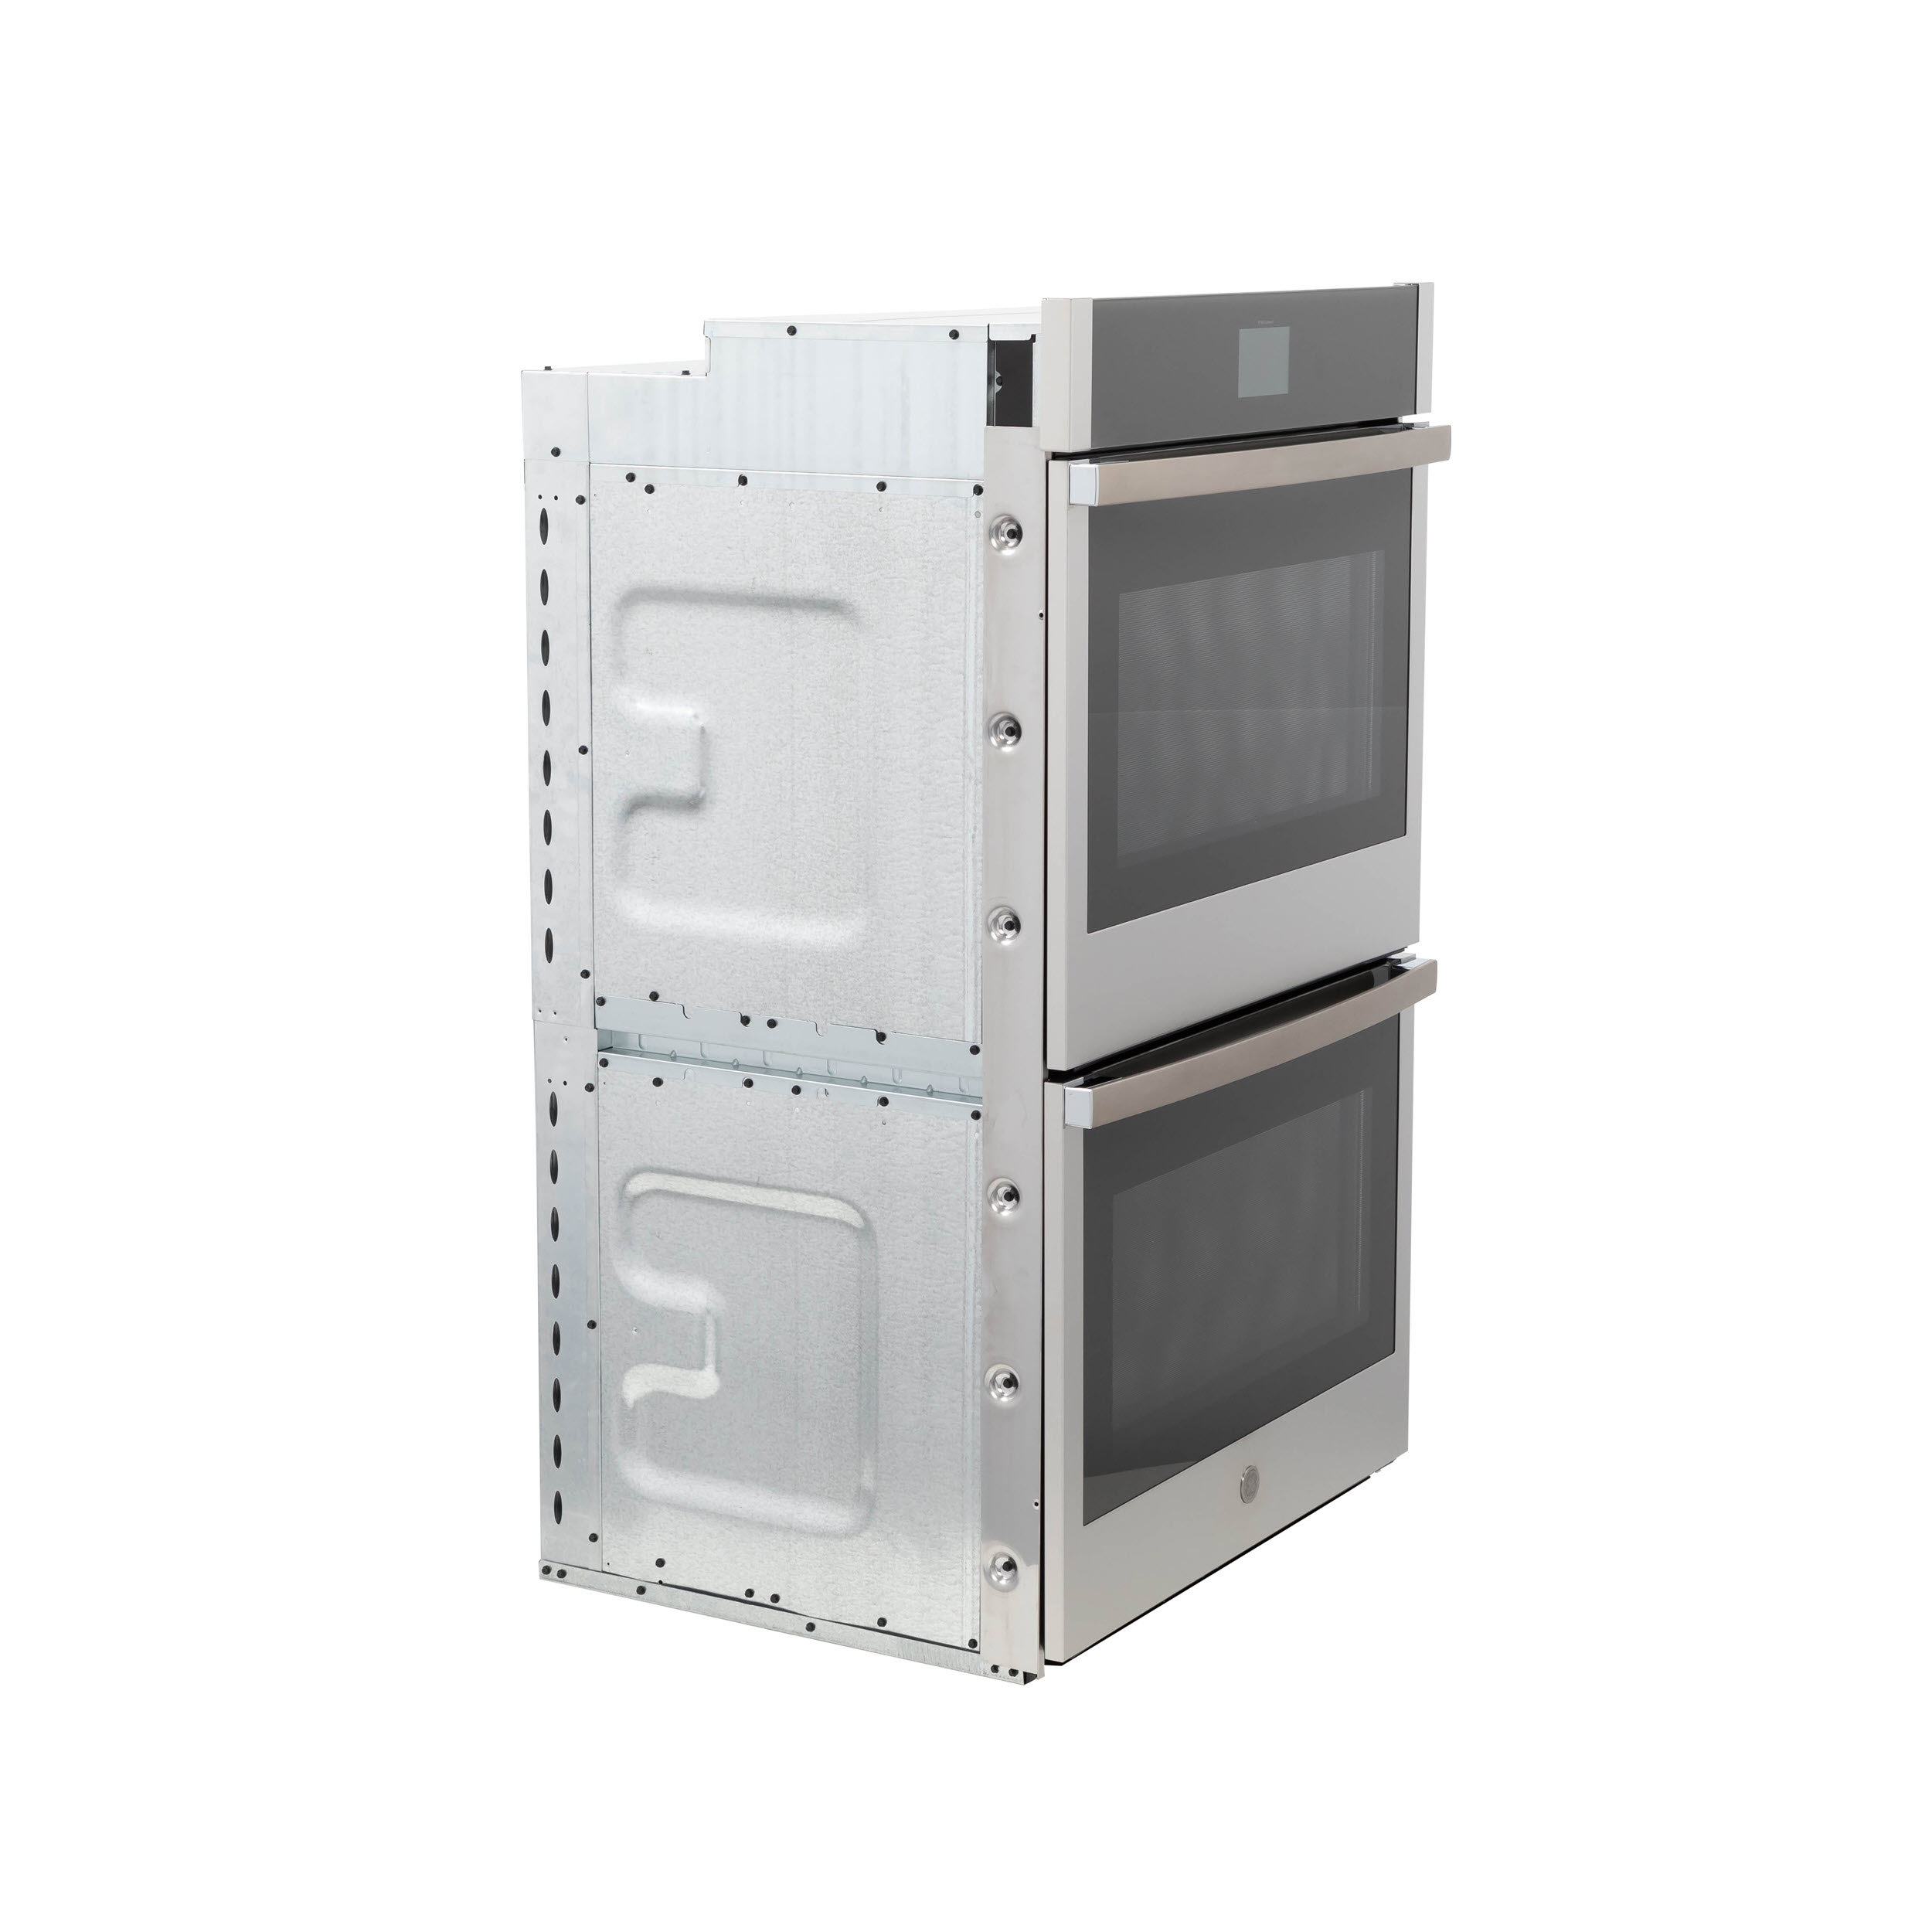 """Model: JTD5000SNSS   GE GE® 30"""" Smart Built-In Self-Clean Convection Double Wall Oven with Never Scrub Racks"""